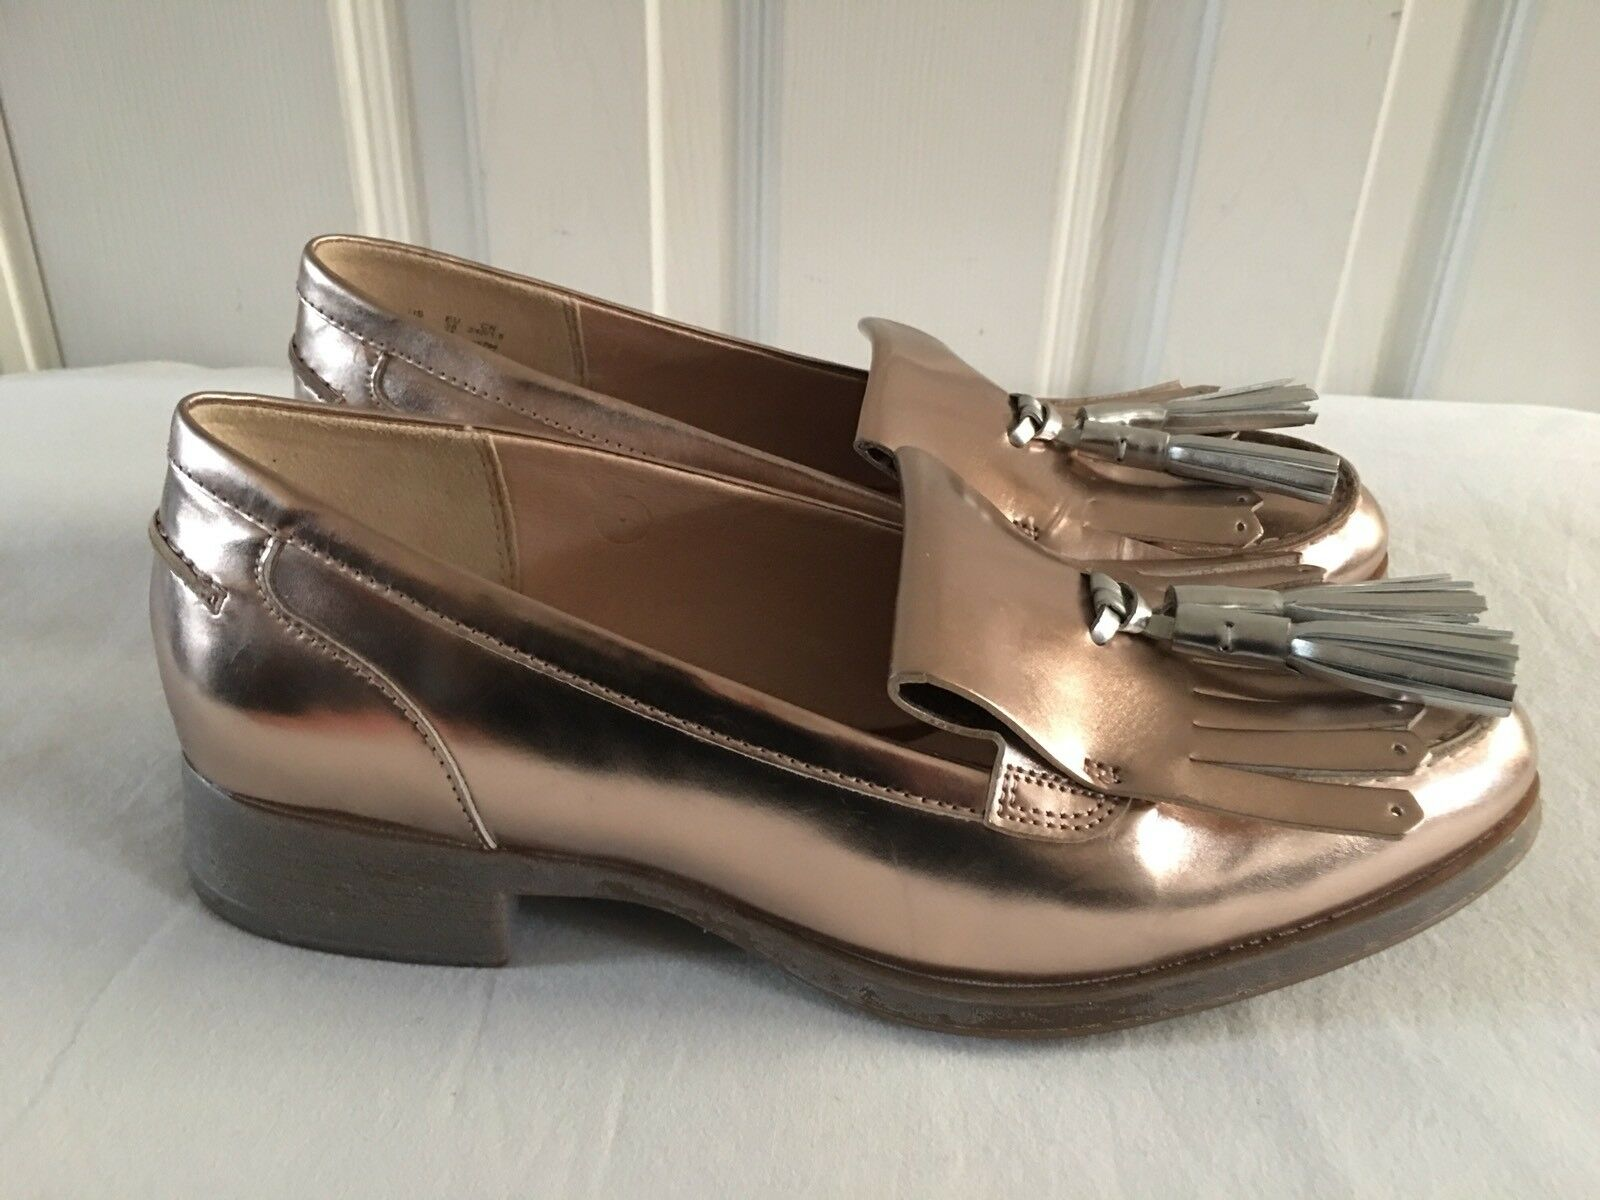 New Clarks Busby Folly Bronze silver Metallic Leather Loafers shoes Sz UK 5 D